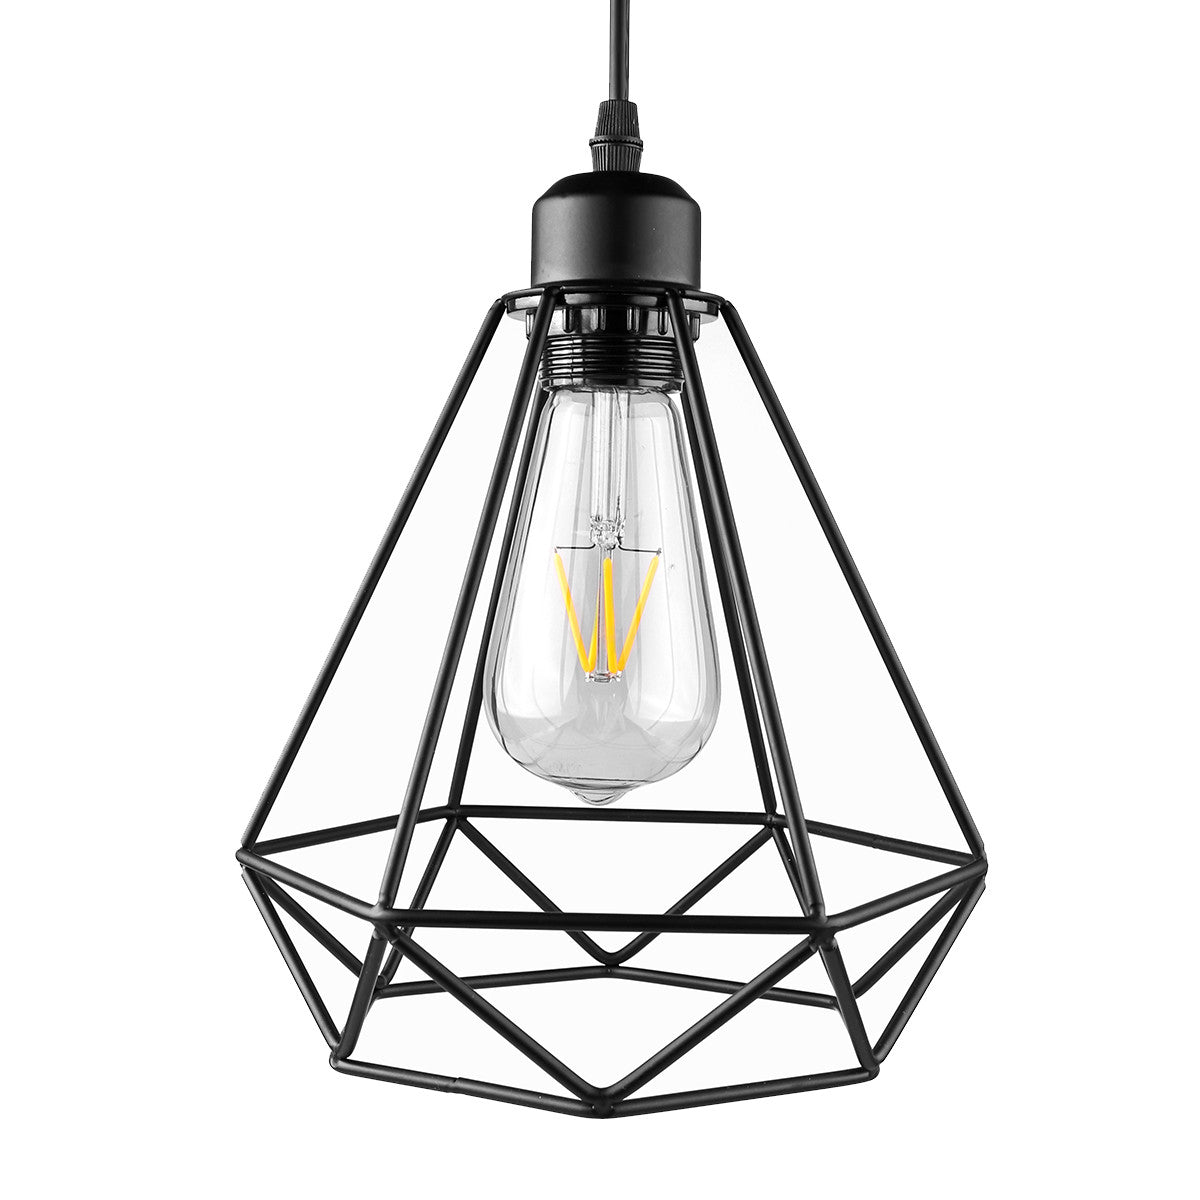 Vintage Cage hanging Droplight